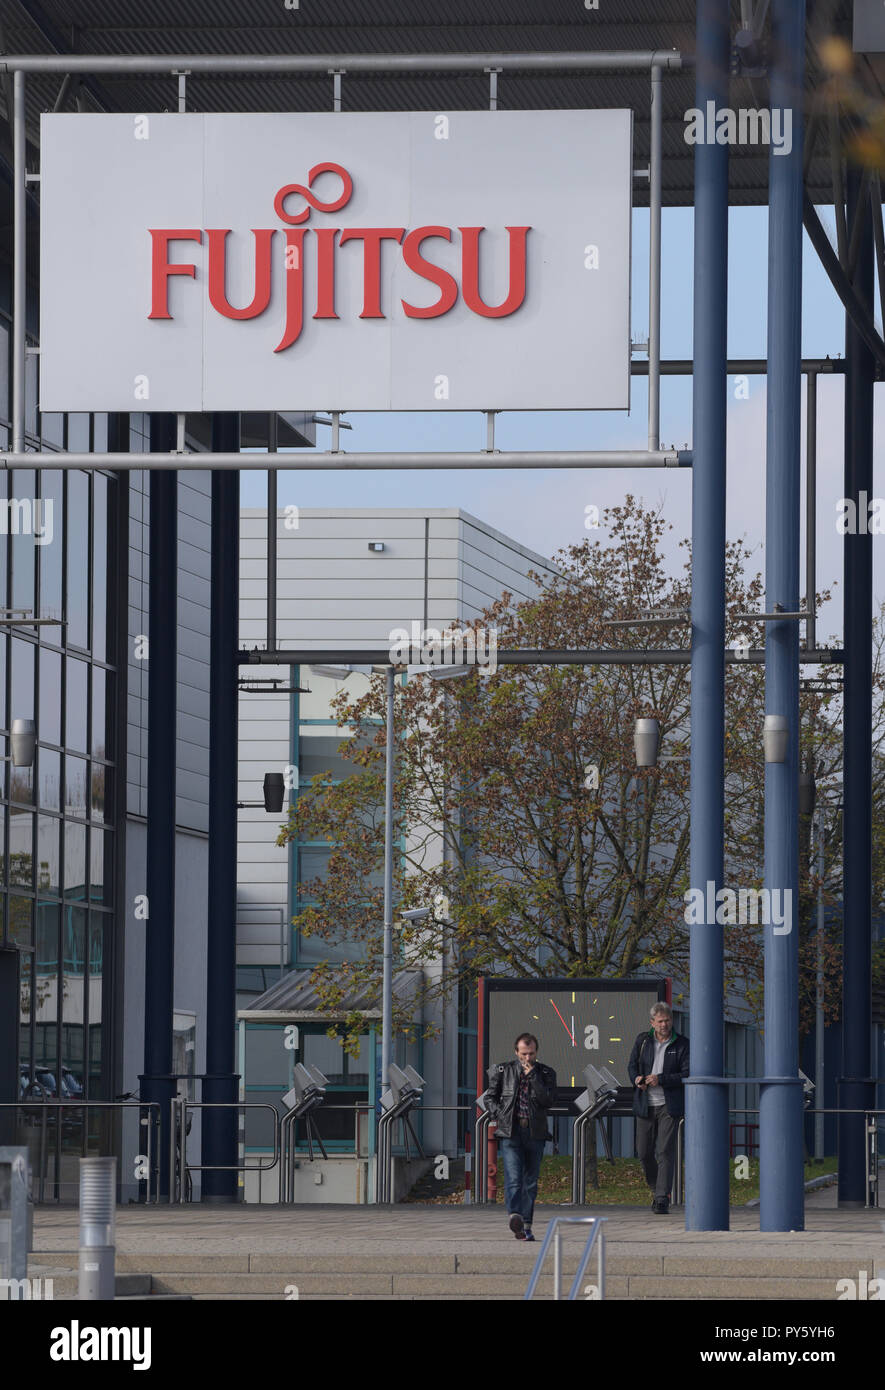 Augsburg, Germany. 26th Oct, 2018. Two men stand shortly before twelve o'clock in the entrance area of the Fujitsu movement. The Japanese computer group Fujitsu is closing its plant in Augsburg by 2020 as part of a major corporate reorganization. All 1500 Augsburg employees are affected by the closure. About 300 jobs at other German locations are also to be cut. Credit: Stefan Puchner/dpa/Alamy Live News - Stock Image